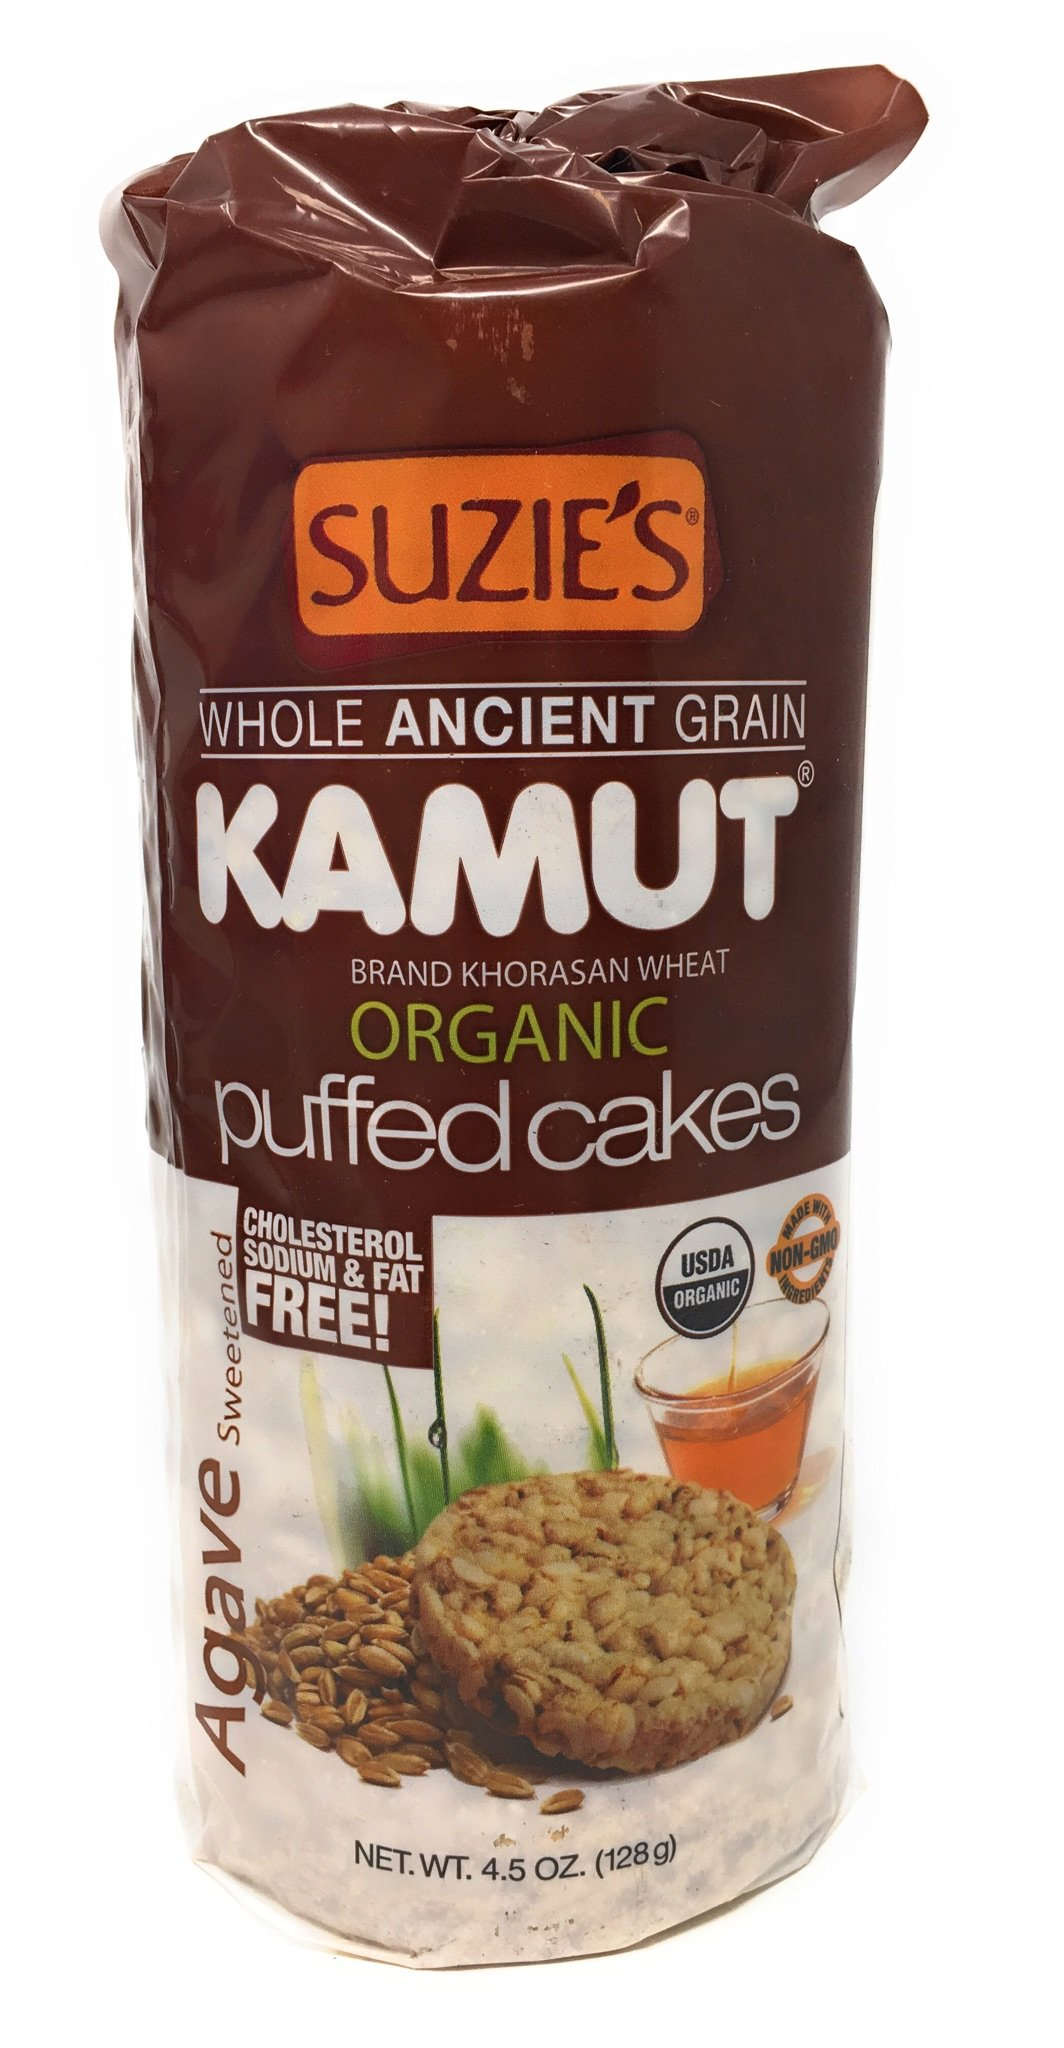 Suzie's Kamut Puffed Cakes, Agave Sweetened, 4.5-Ounce Bags (Pack of 12)